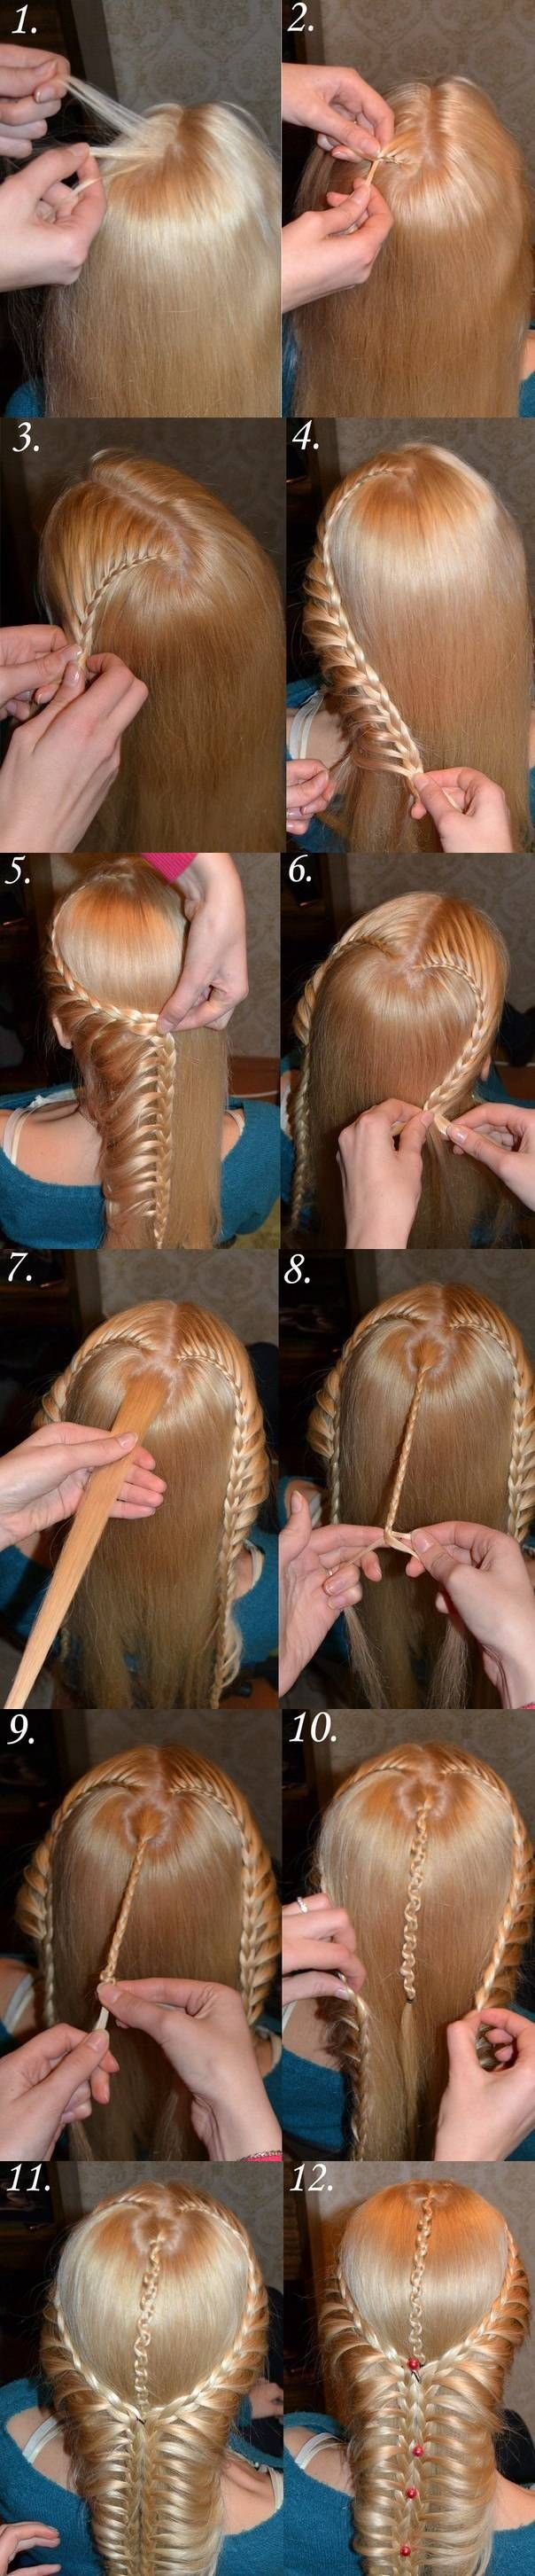 Great until that weird center braid...tho the braid itself is pretty.